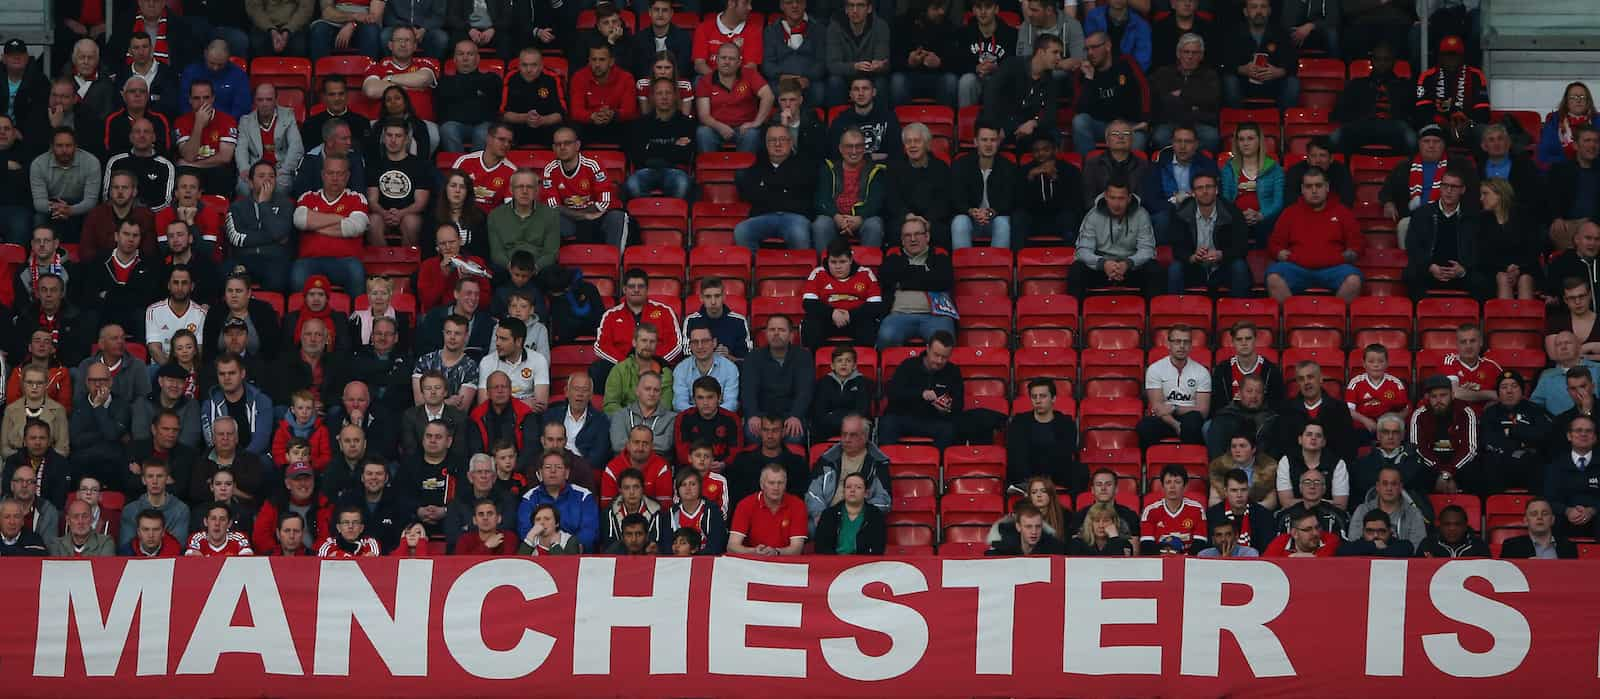 Have Man United fans lost faith in van Gaal? Empty seats at Old Trafford